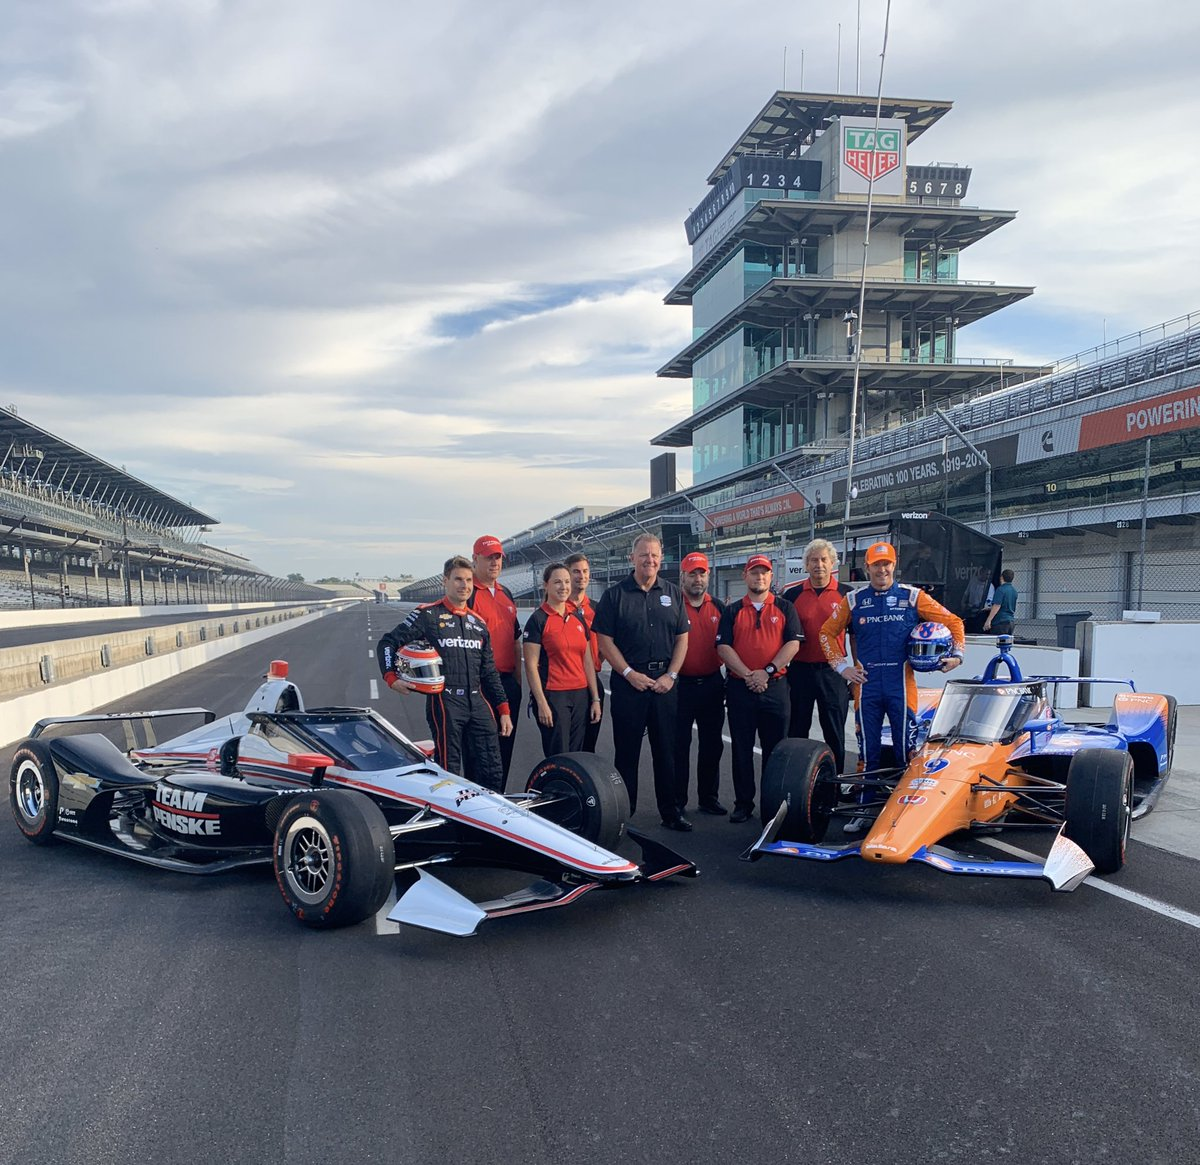 Time to make history at #IMS today. Join us on the turn 2 mounds to see @scottdixon9 and @12WillPower test the @INDYCAR Aeroscreen! #IsItMayYet | #Indy500